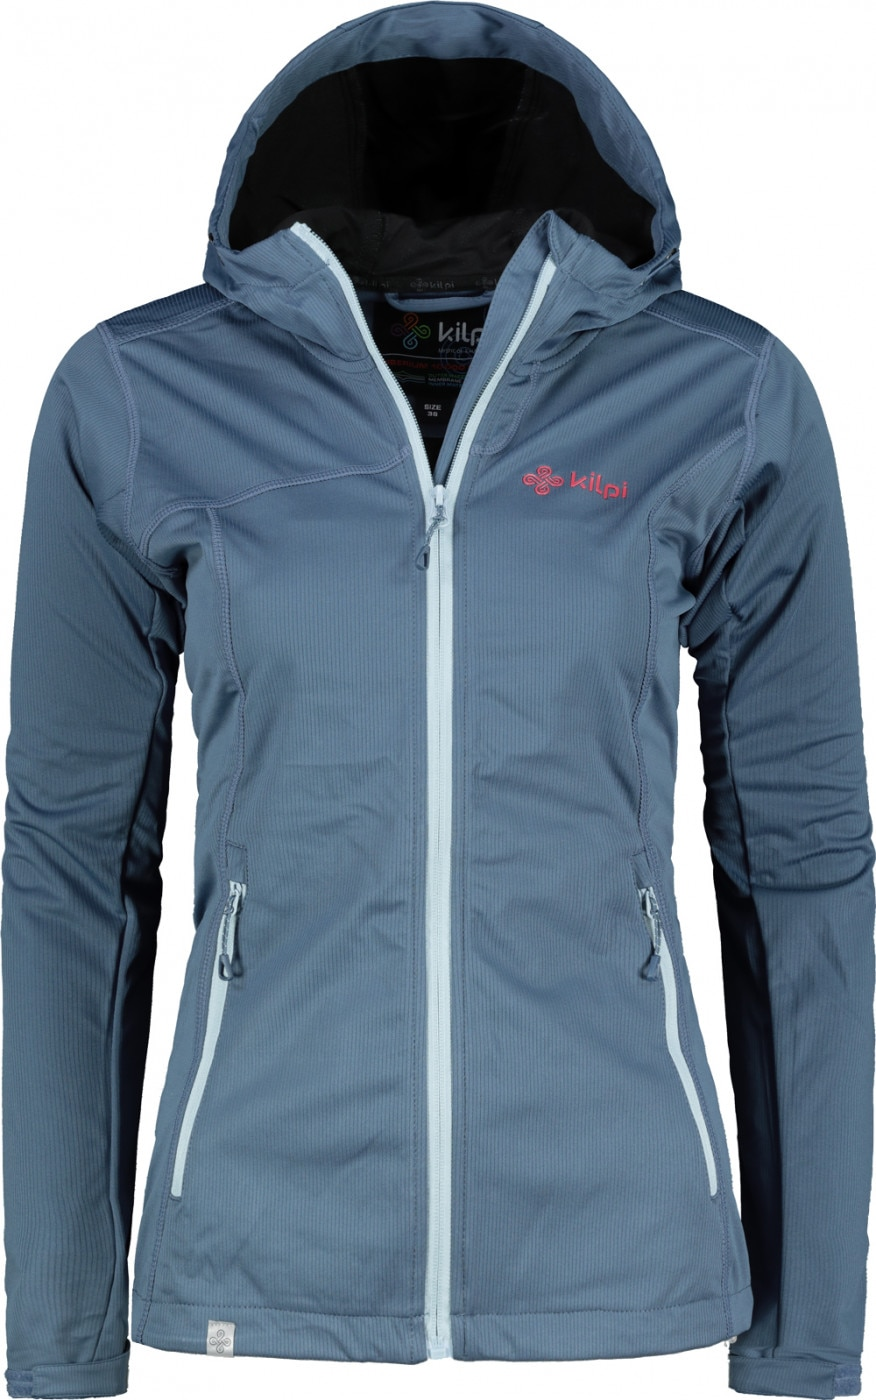 Women's softshell jacket Kilpi CAMPO-W